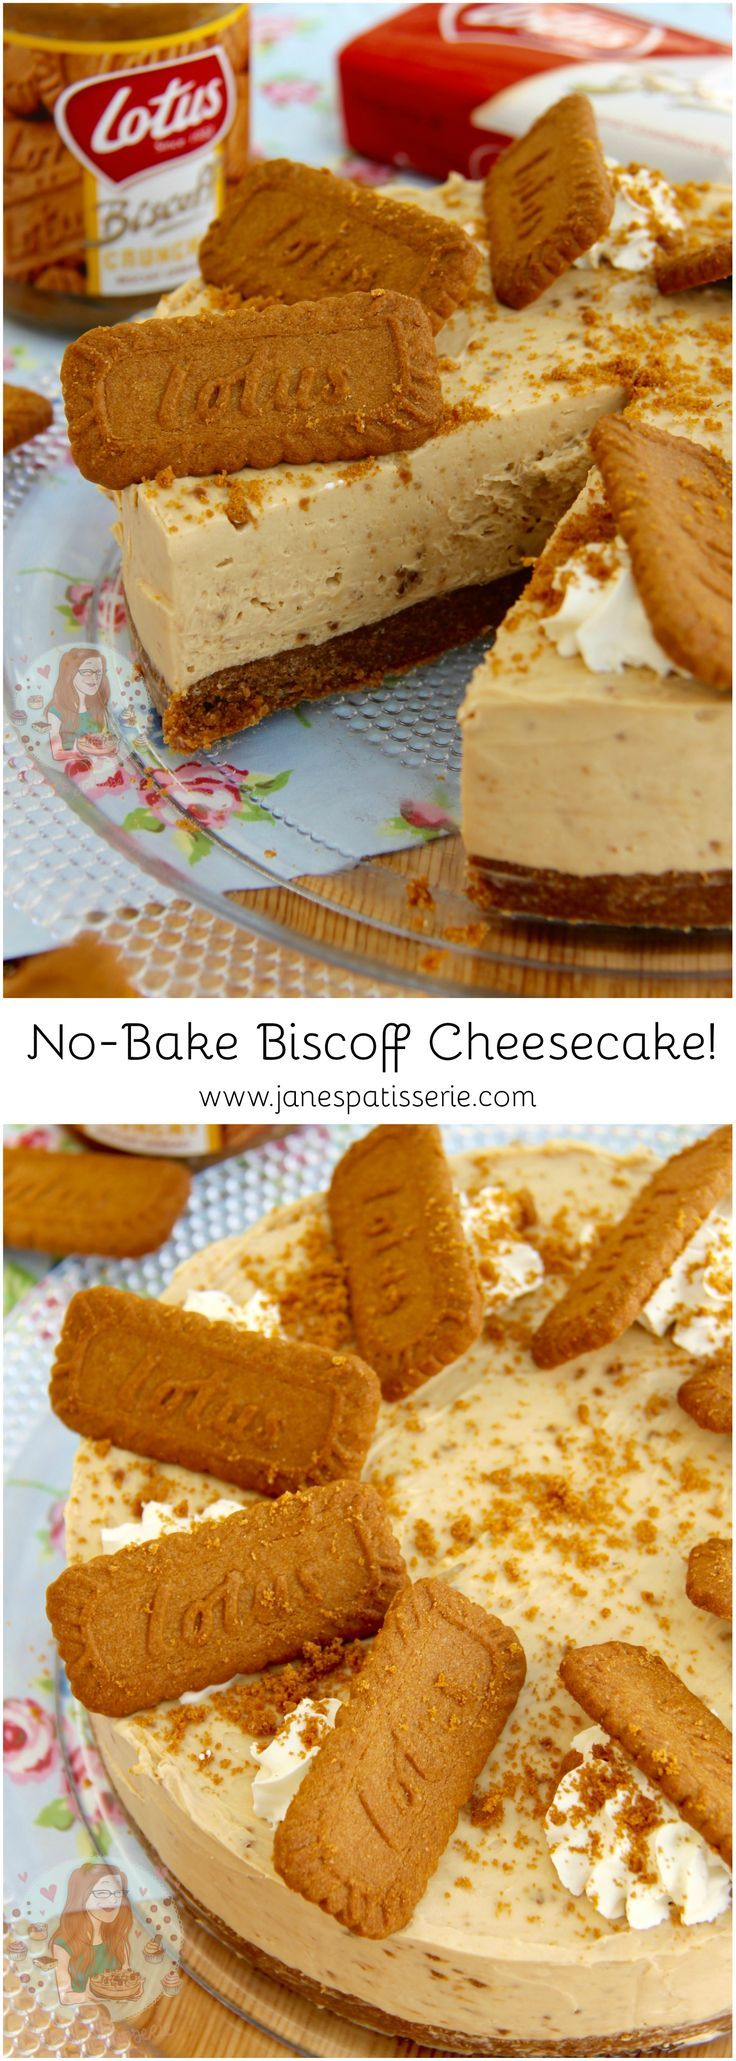 No-Bake Biscoff Cheesecake! ❤️ A delicious No-Bake Biscoff Cookie Butter Cheesecake, sprinkled with more biscuits and whipped cream – Spiced Cookie Heaven.